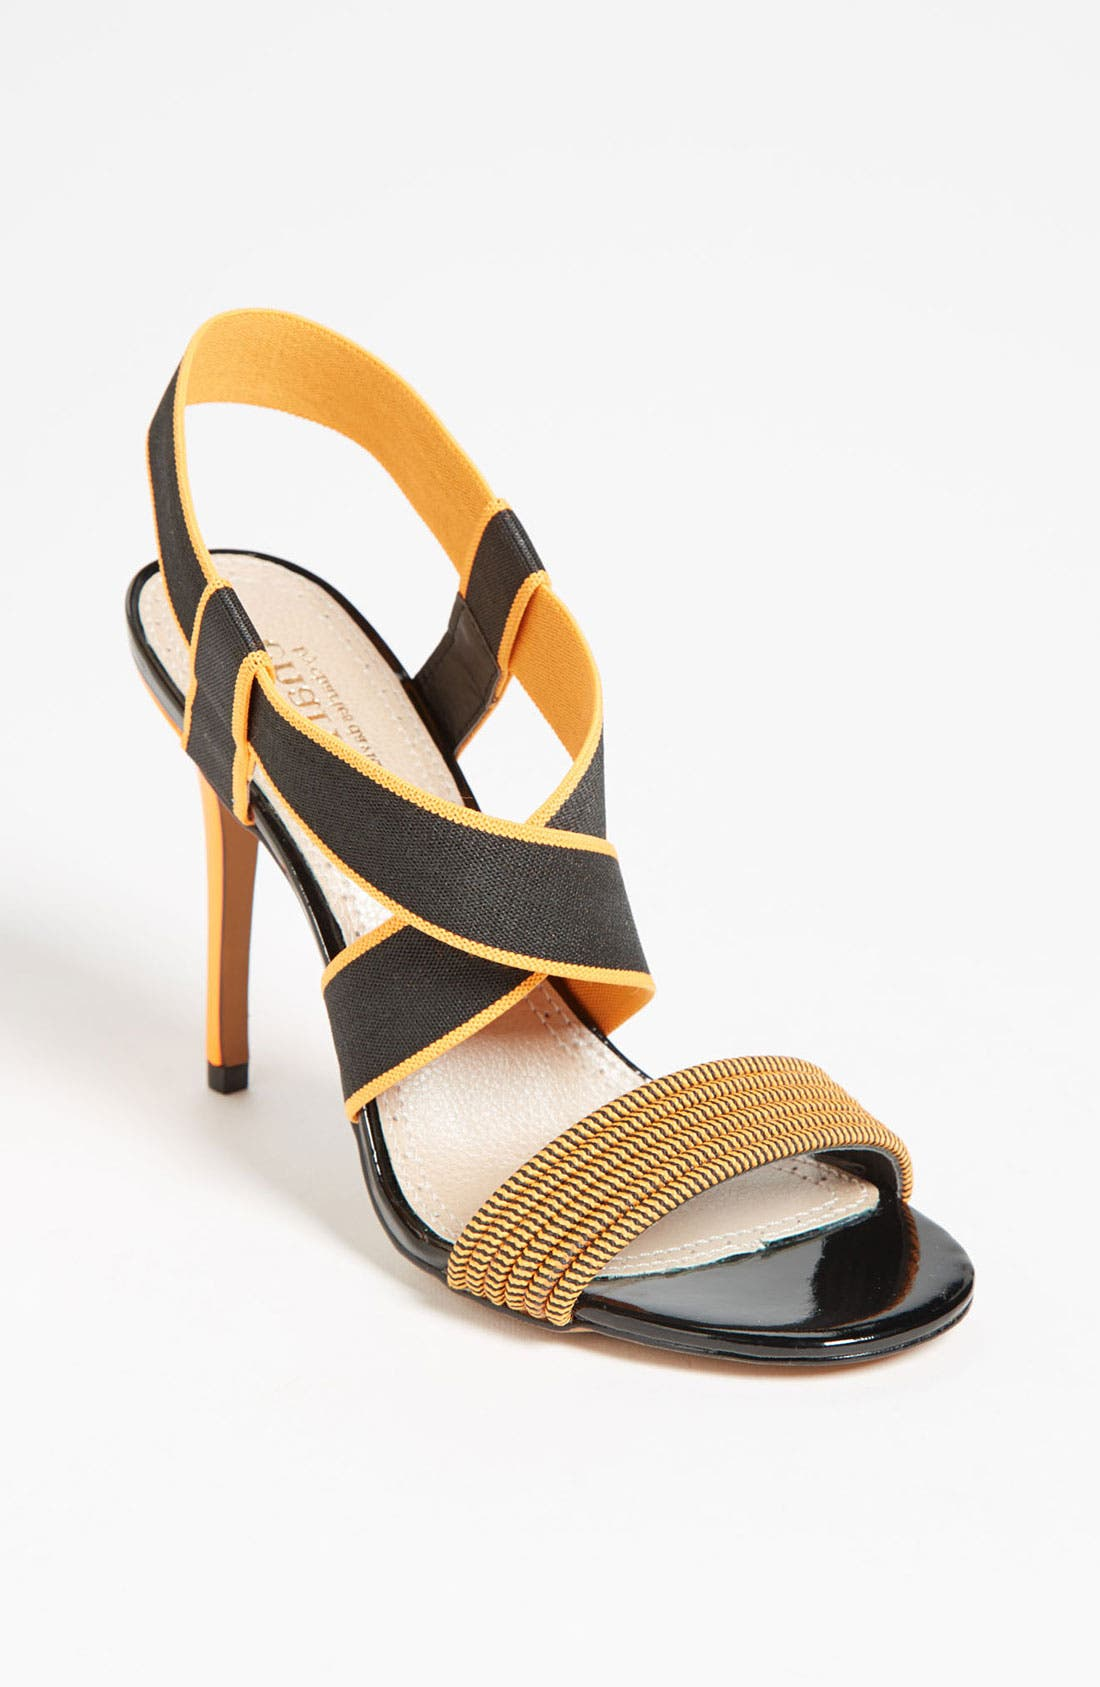 Main Image - Charles by Charles David 'Regency' Sandal